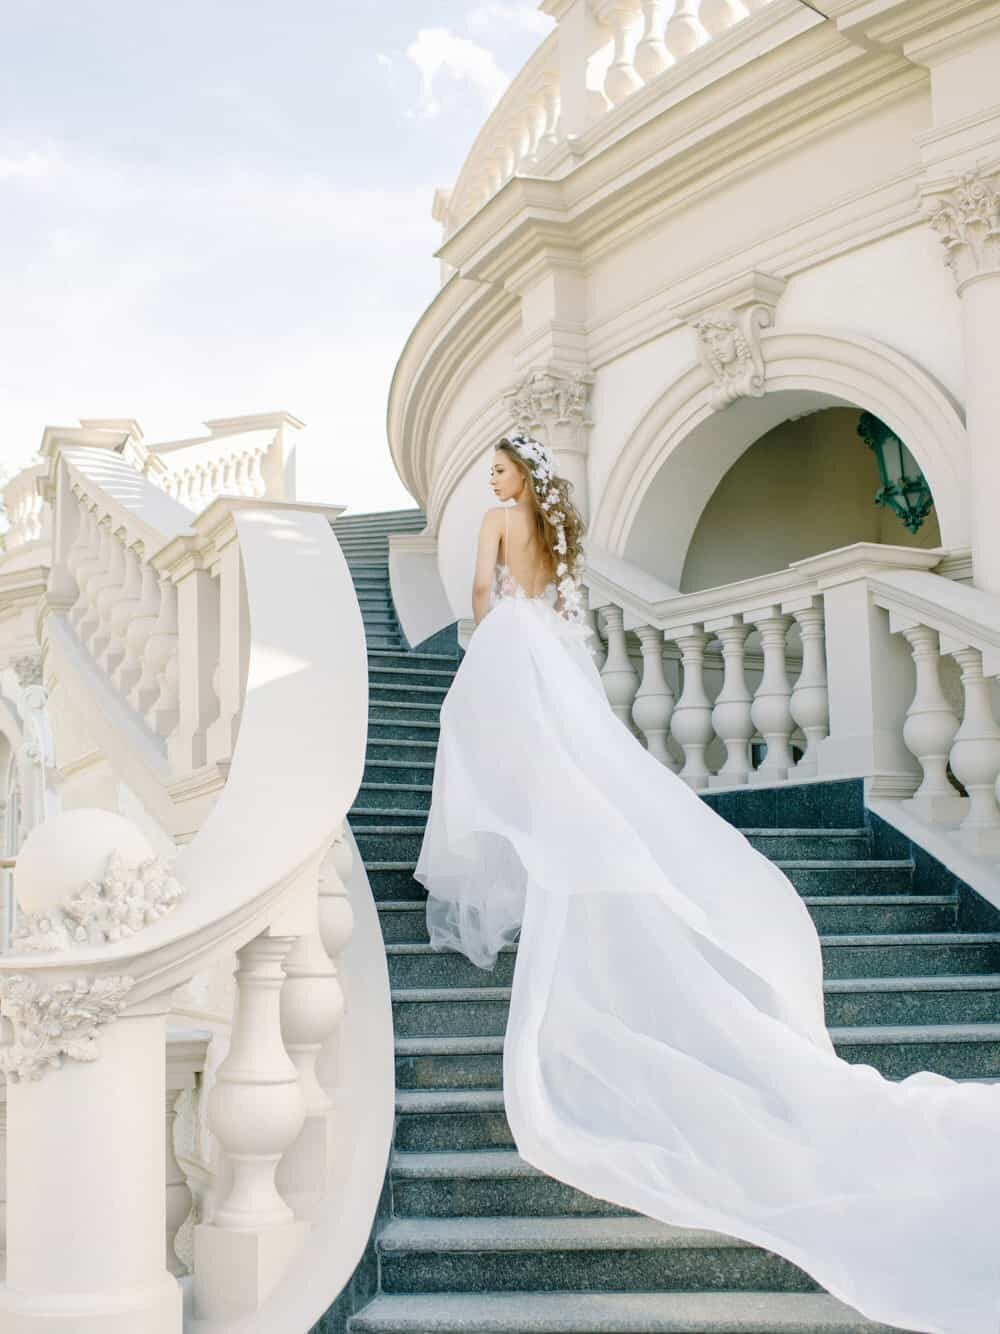 VILLA-ROTONDA-DEAUVILLE-wedding-moscow-by-Julia-Kaptelova-Photography-027